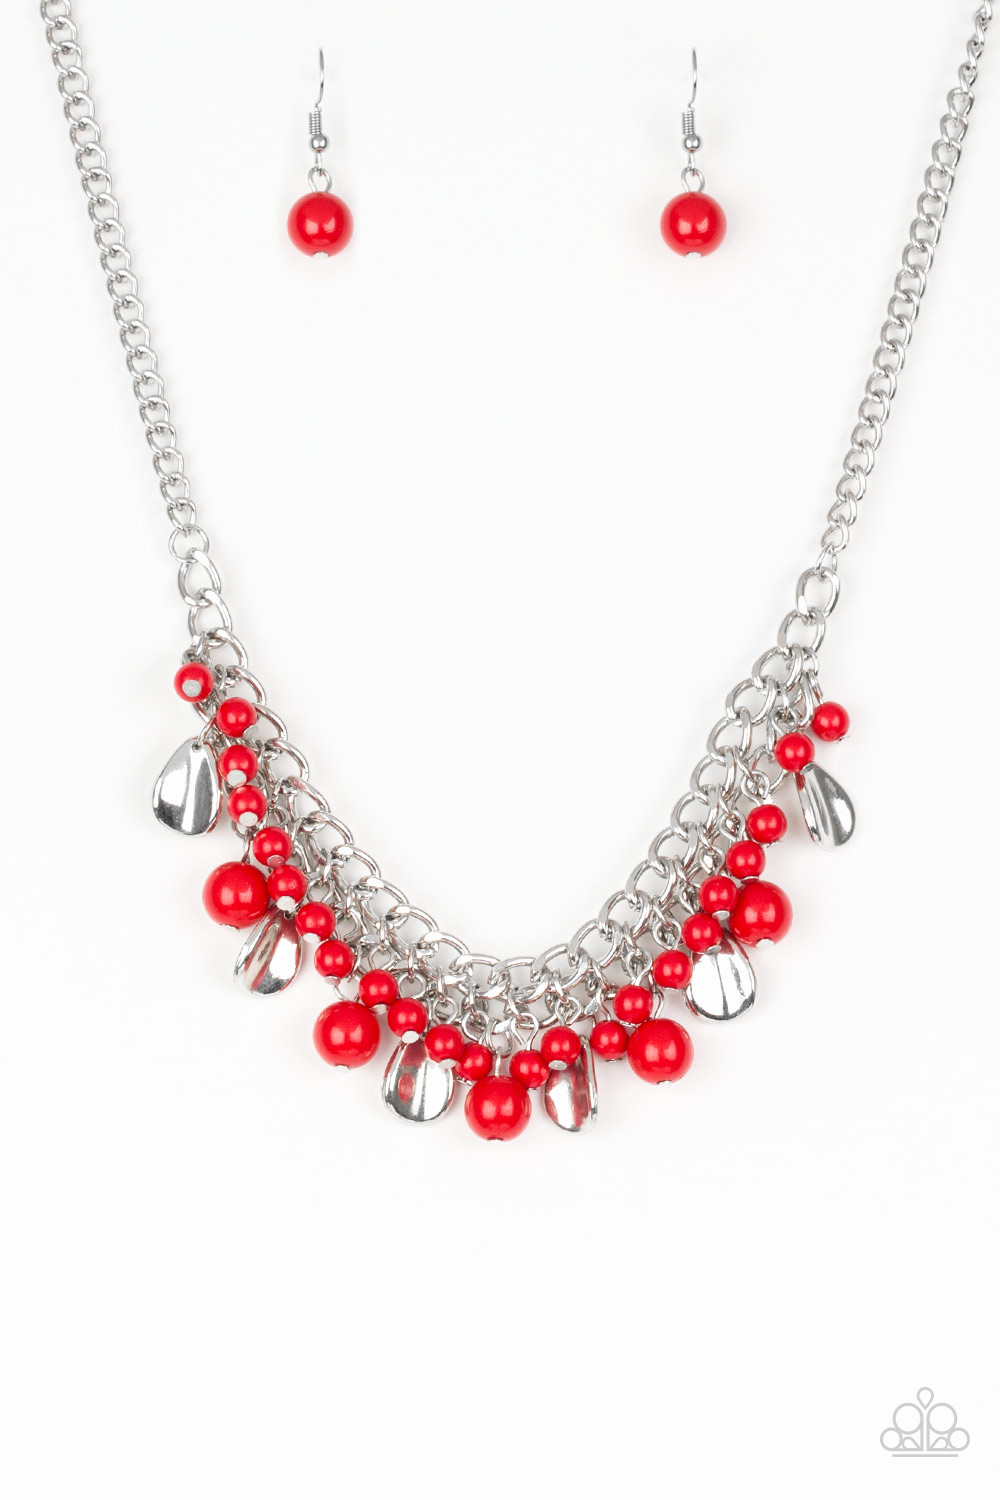 Summer Showdown - Red Necklace $5 my-bling.com Gorgeous Red and Silver dangle necklace.